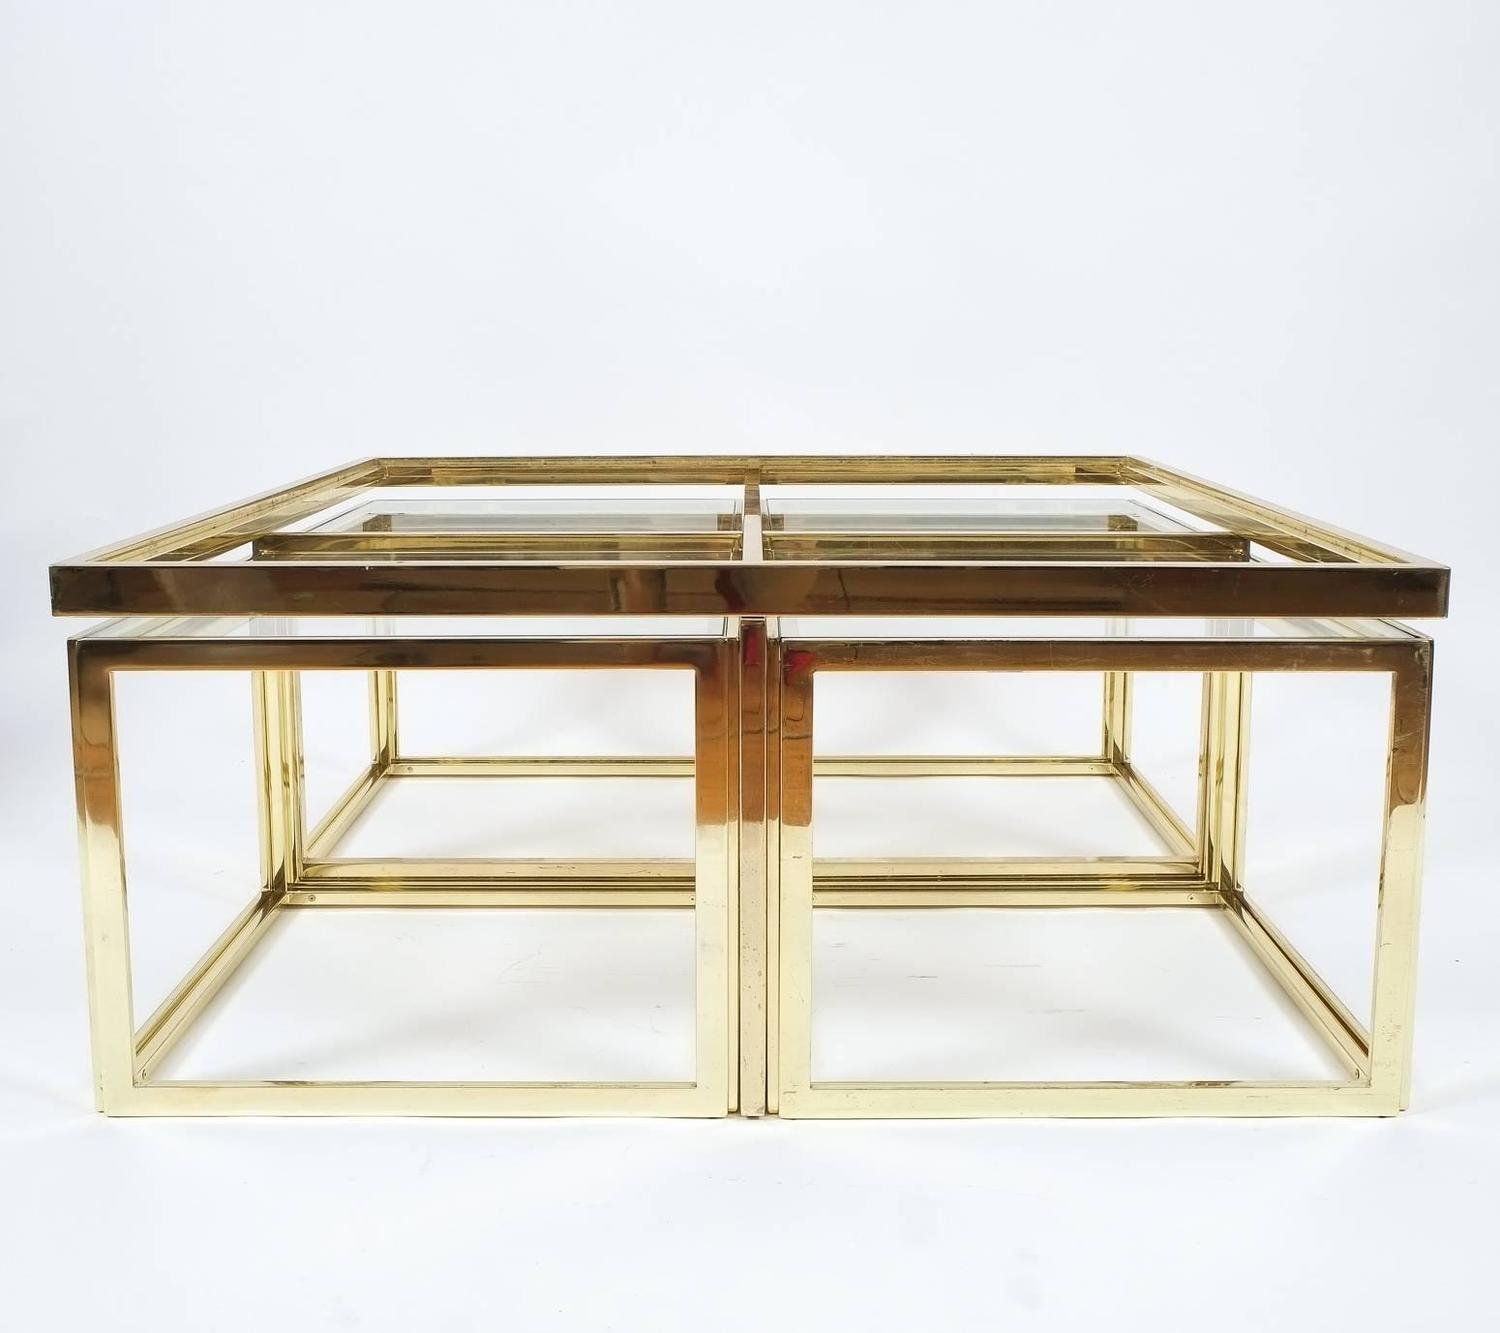 Square Segment Brass And Glass Coffee Table By Maison Charles At 1stdibs